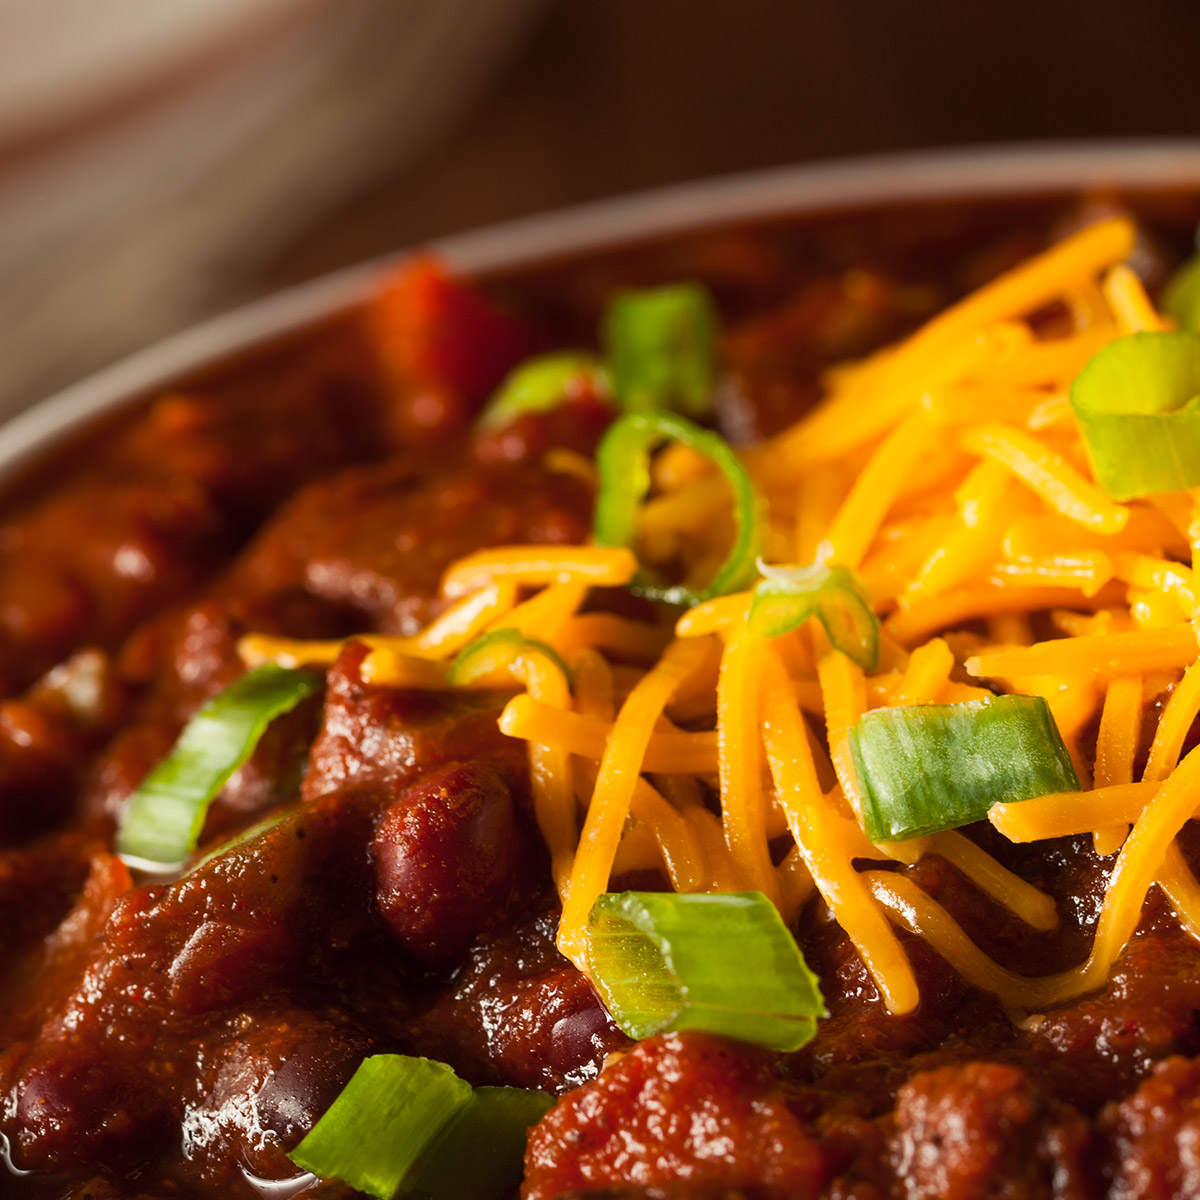 The Motorcycle Marvel Food suggestion - Chili Con Carne